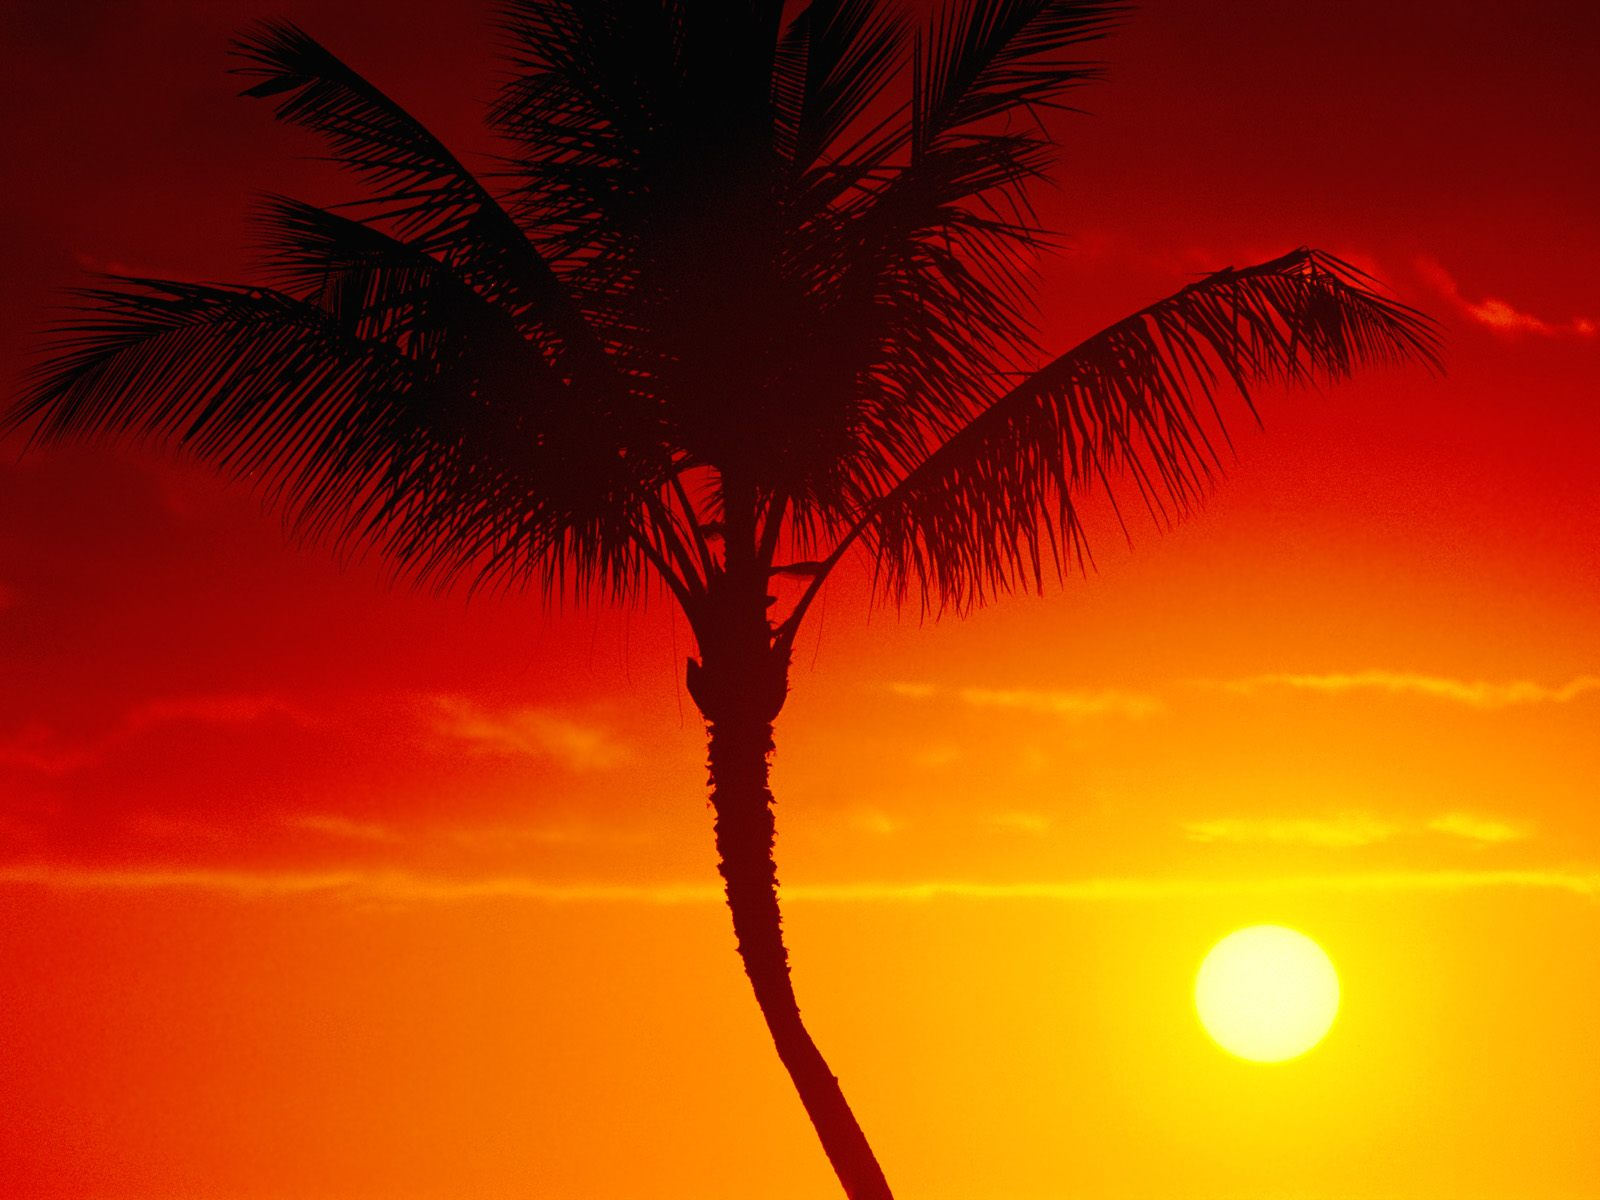 Warmth of Summer, Maui, Hawaii